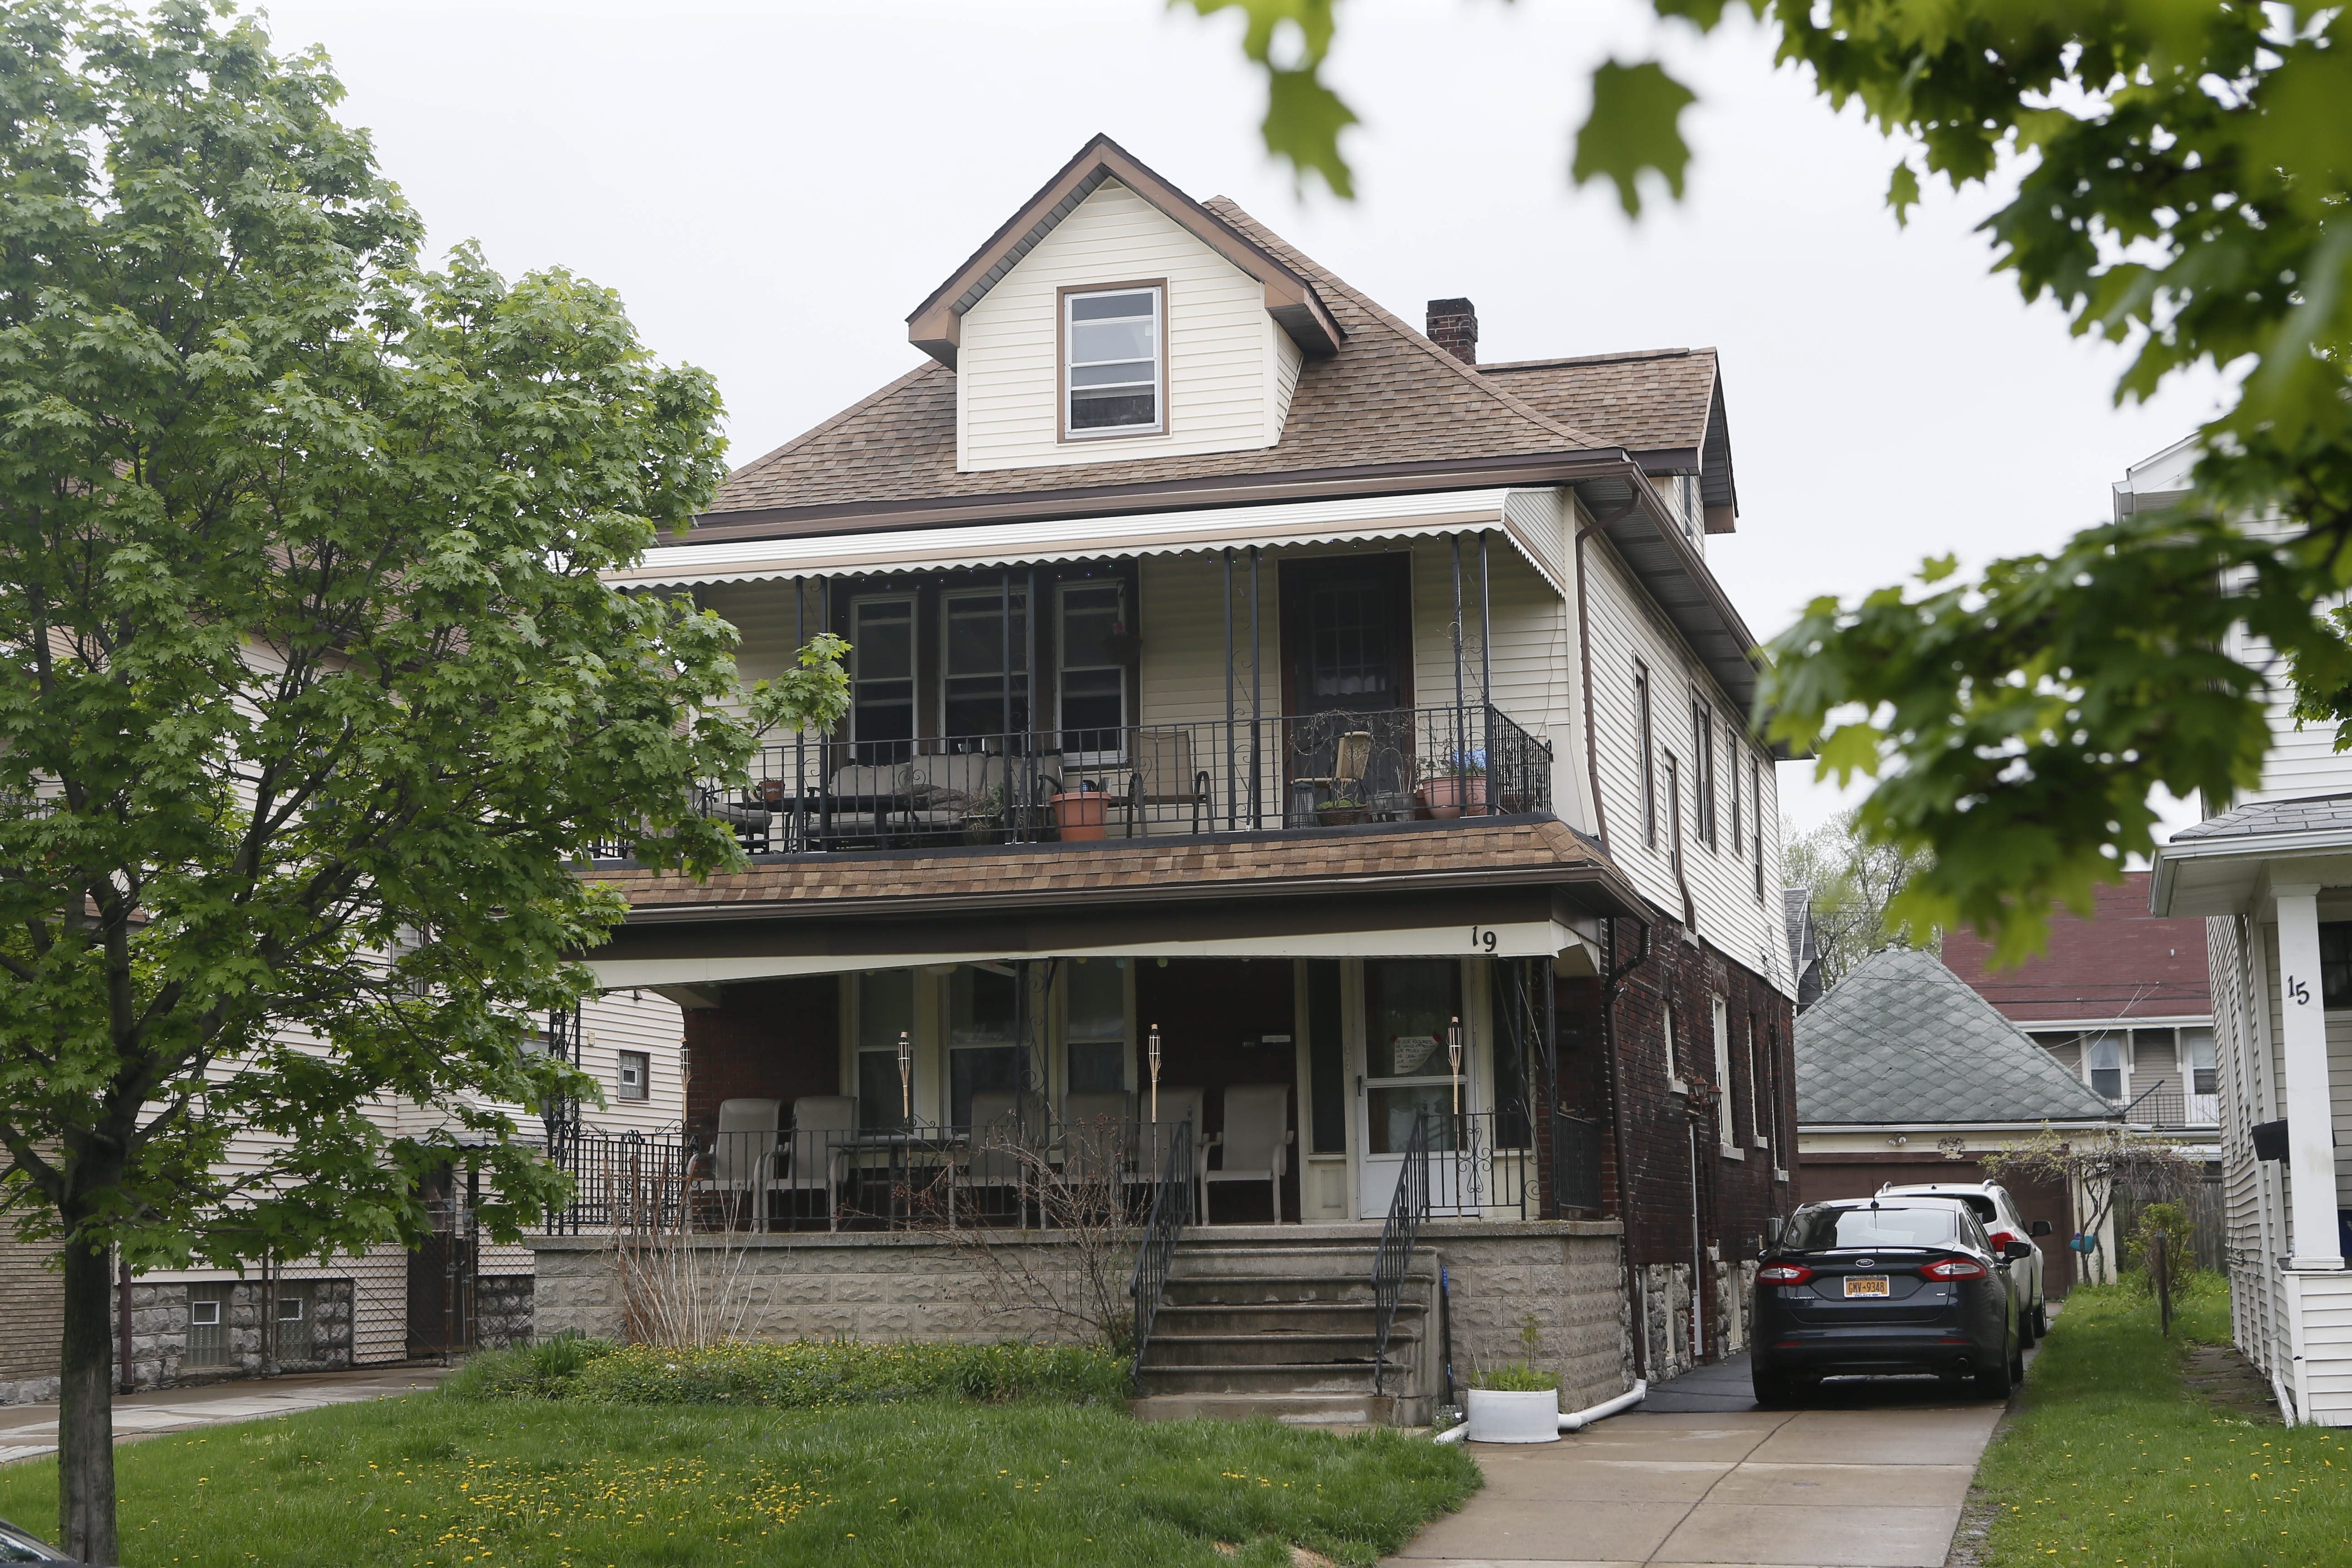 The home at 19 Lovering Ave. in North Buffalo, where a boy was fatally stabbed overnight.